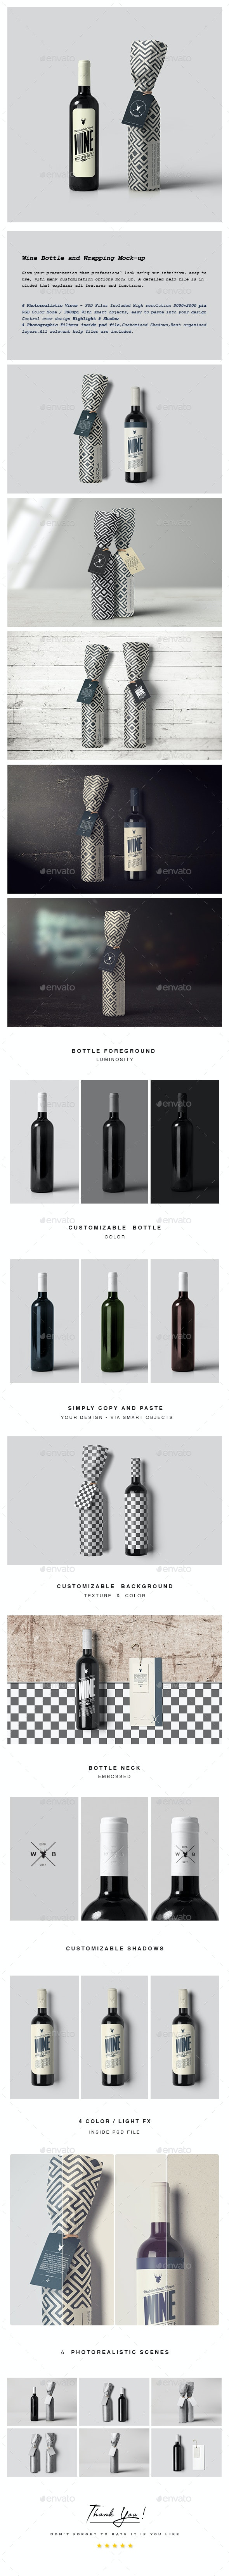 Wine Bottle/Wrapping Mock-up - Food and Drink Packaging